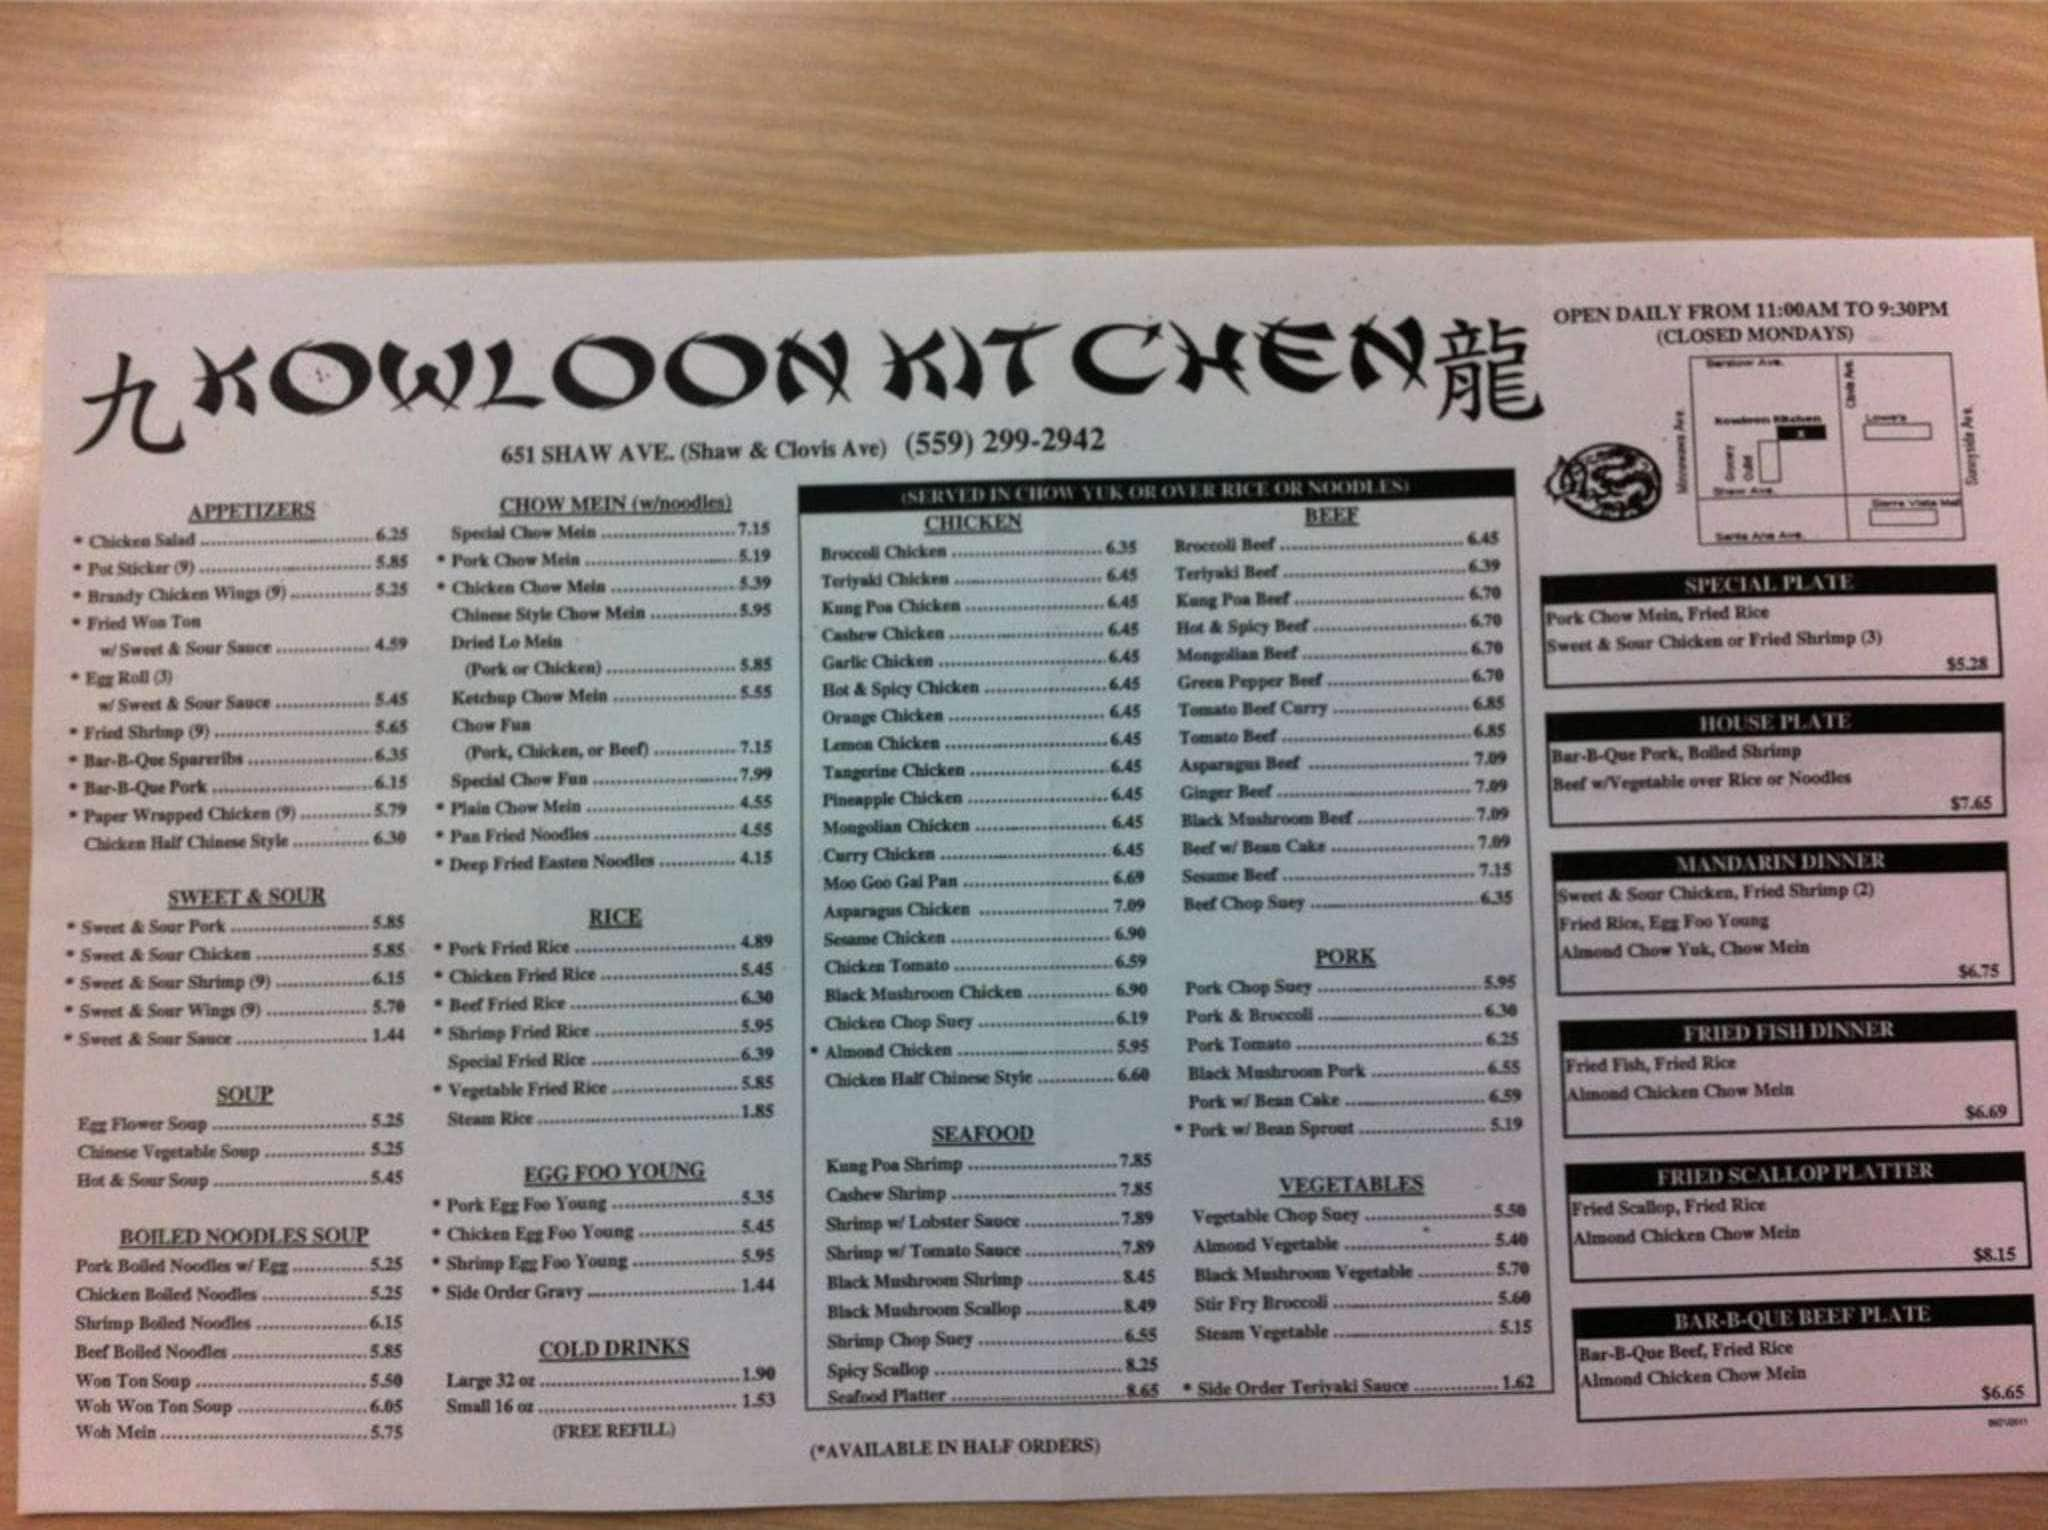 Menu at Kowloon kitchen restaurant, Clovis